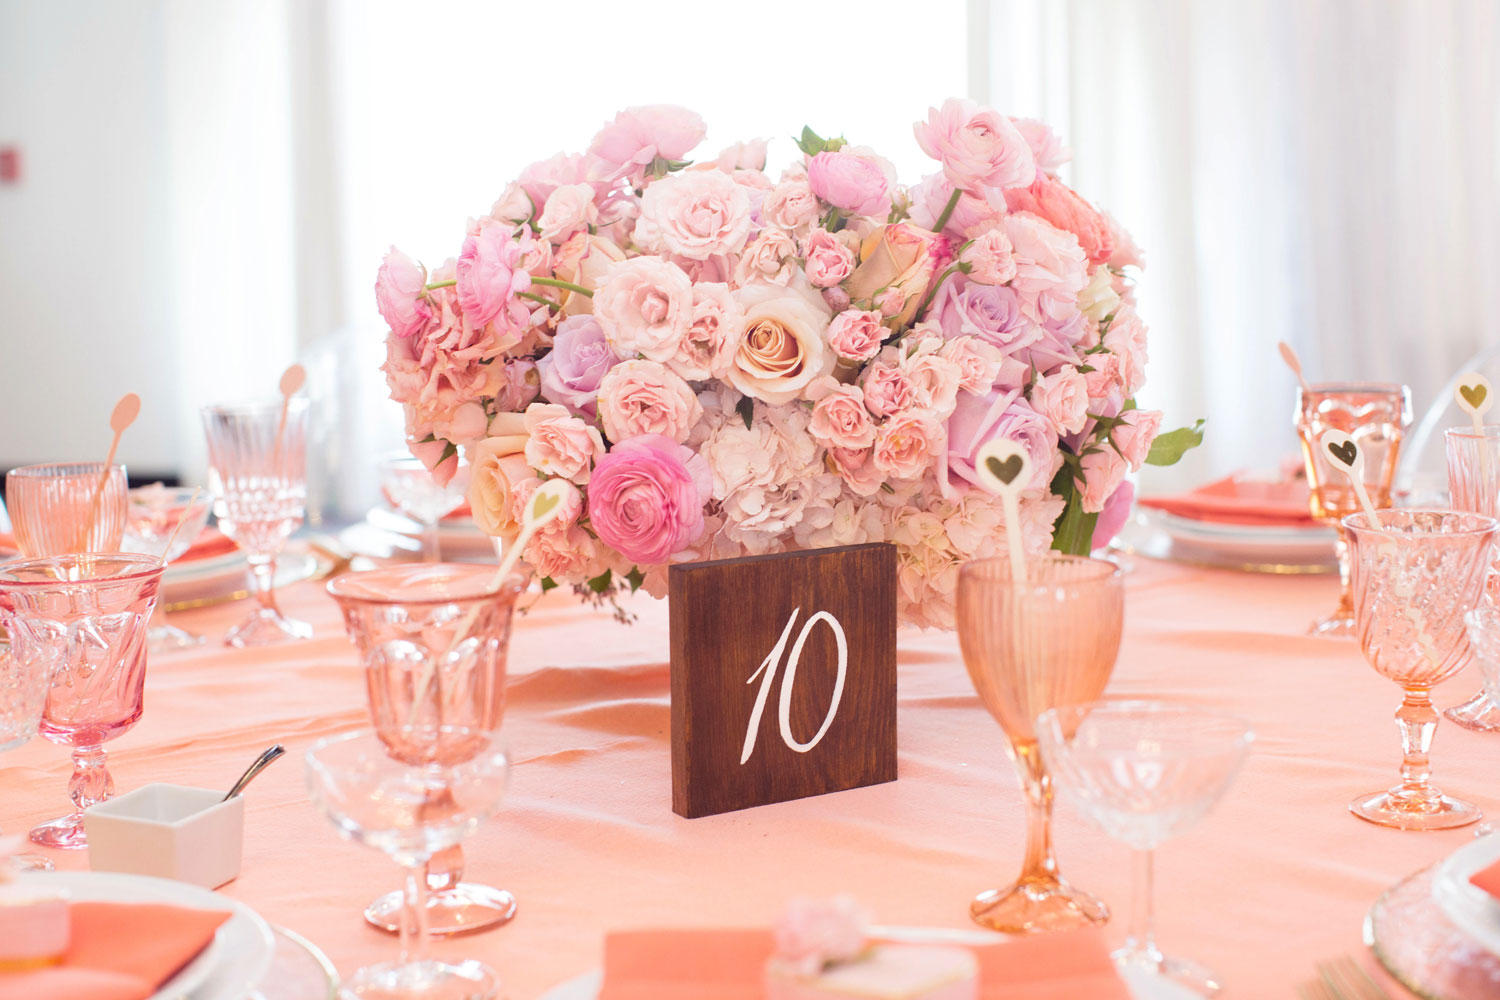 Pink linens and glassware at bridal shower table wedding ideas